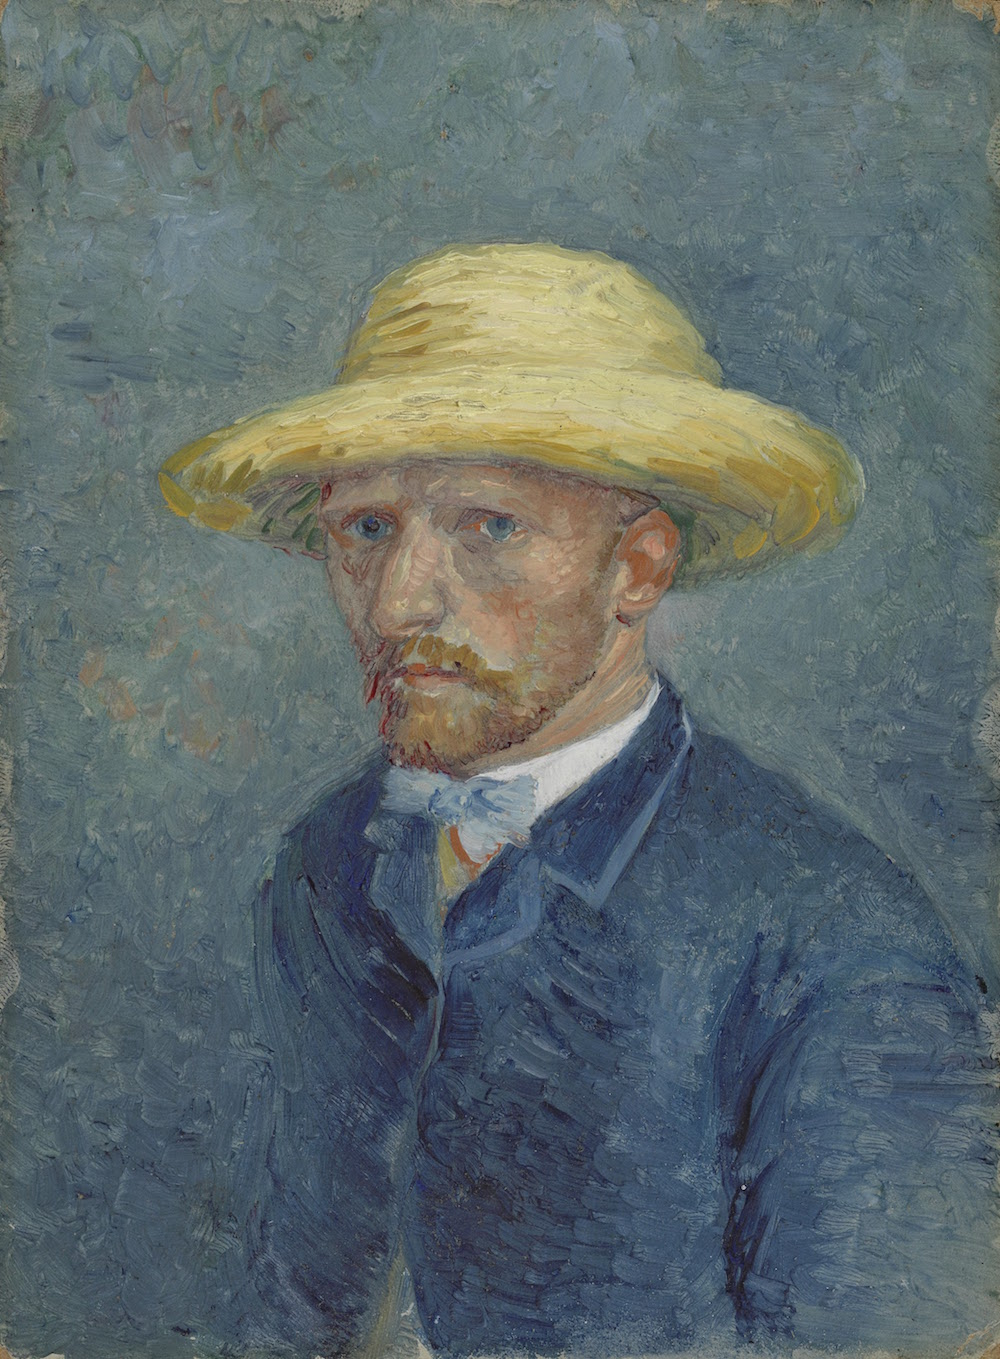 Download Hundreds of Van Gogh Paintings Sketches  Letters in High Resolution  Open Culture